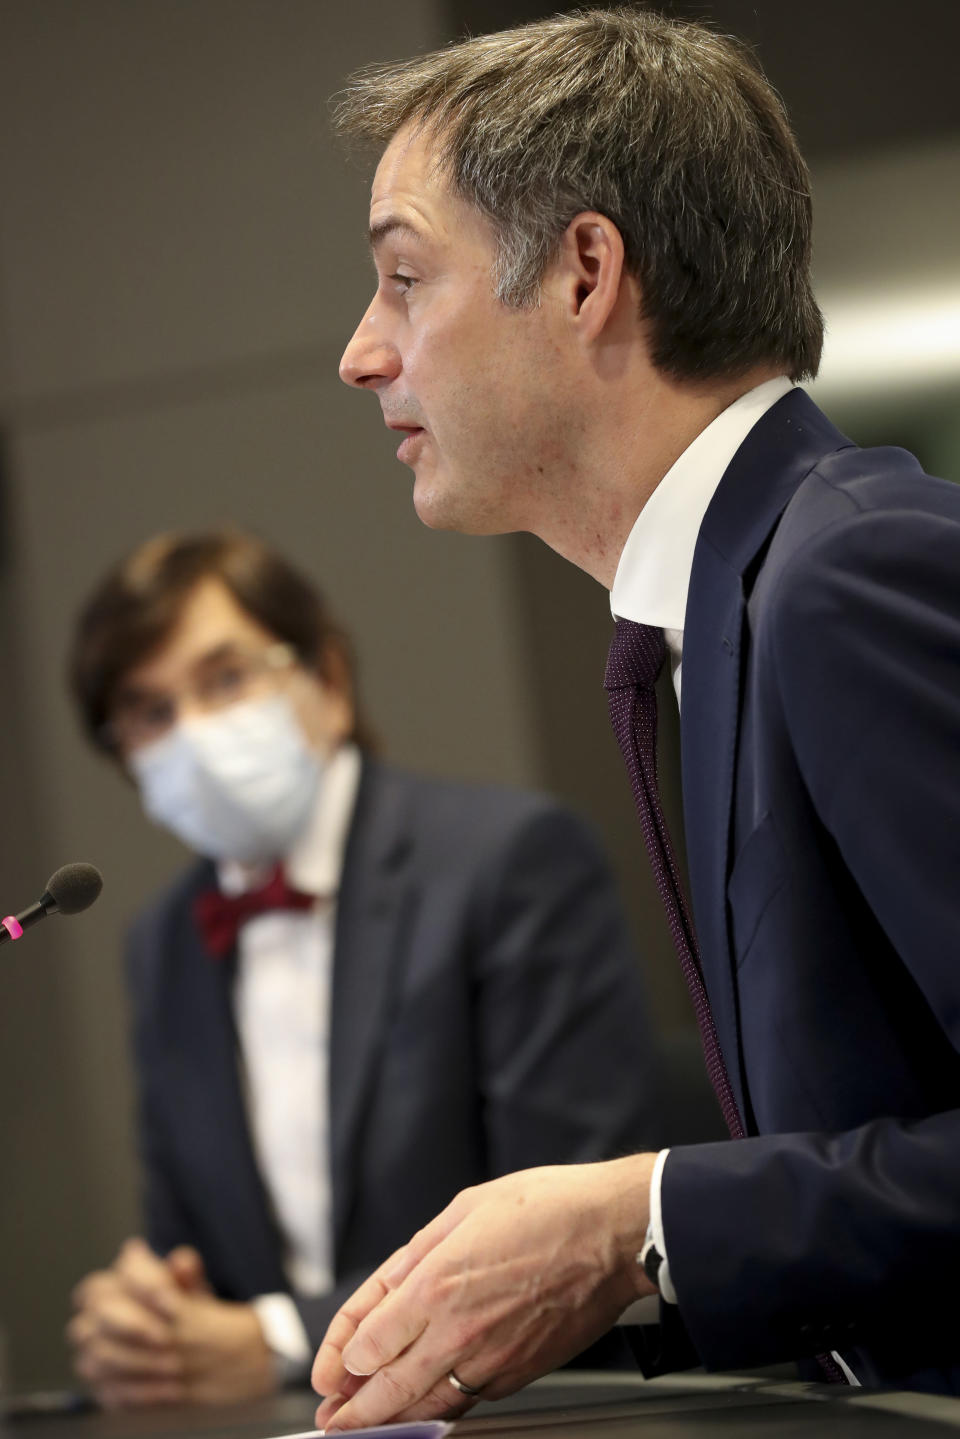 Belgium's Prime Minister Alexander De Croo, right, speaks during a media conference after a meeting of the consultative committee of government ministers in Brussels, Wednesday, March 24, 2021. Ministers met on Wednesday to discuss a possible tightening of COVID-19 measures as infections are once again on the rise. (Benoit Doppagne, Pool via AP)